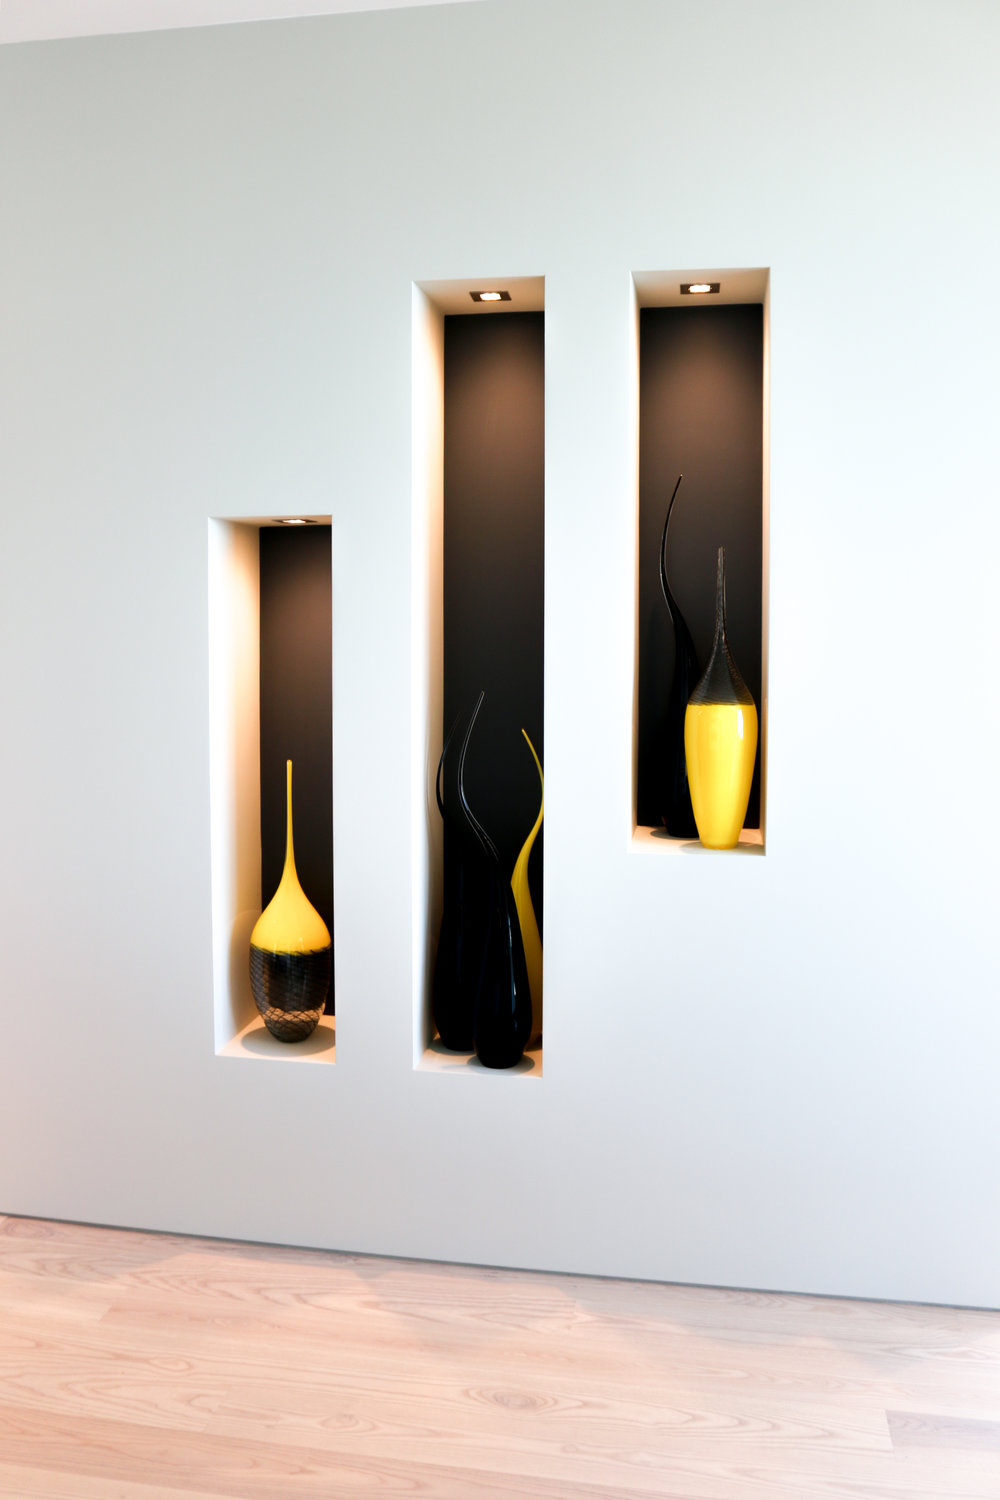 White wall with three niches and three yellow glass vases